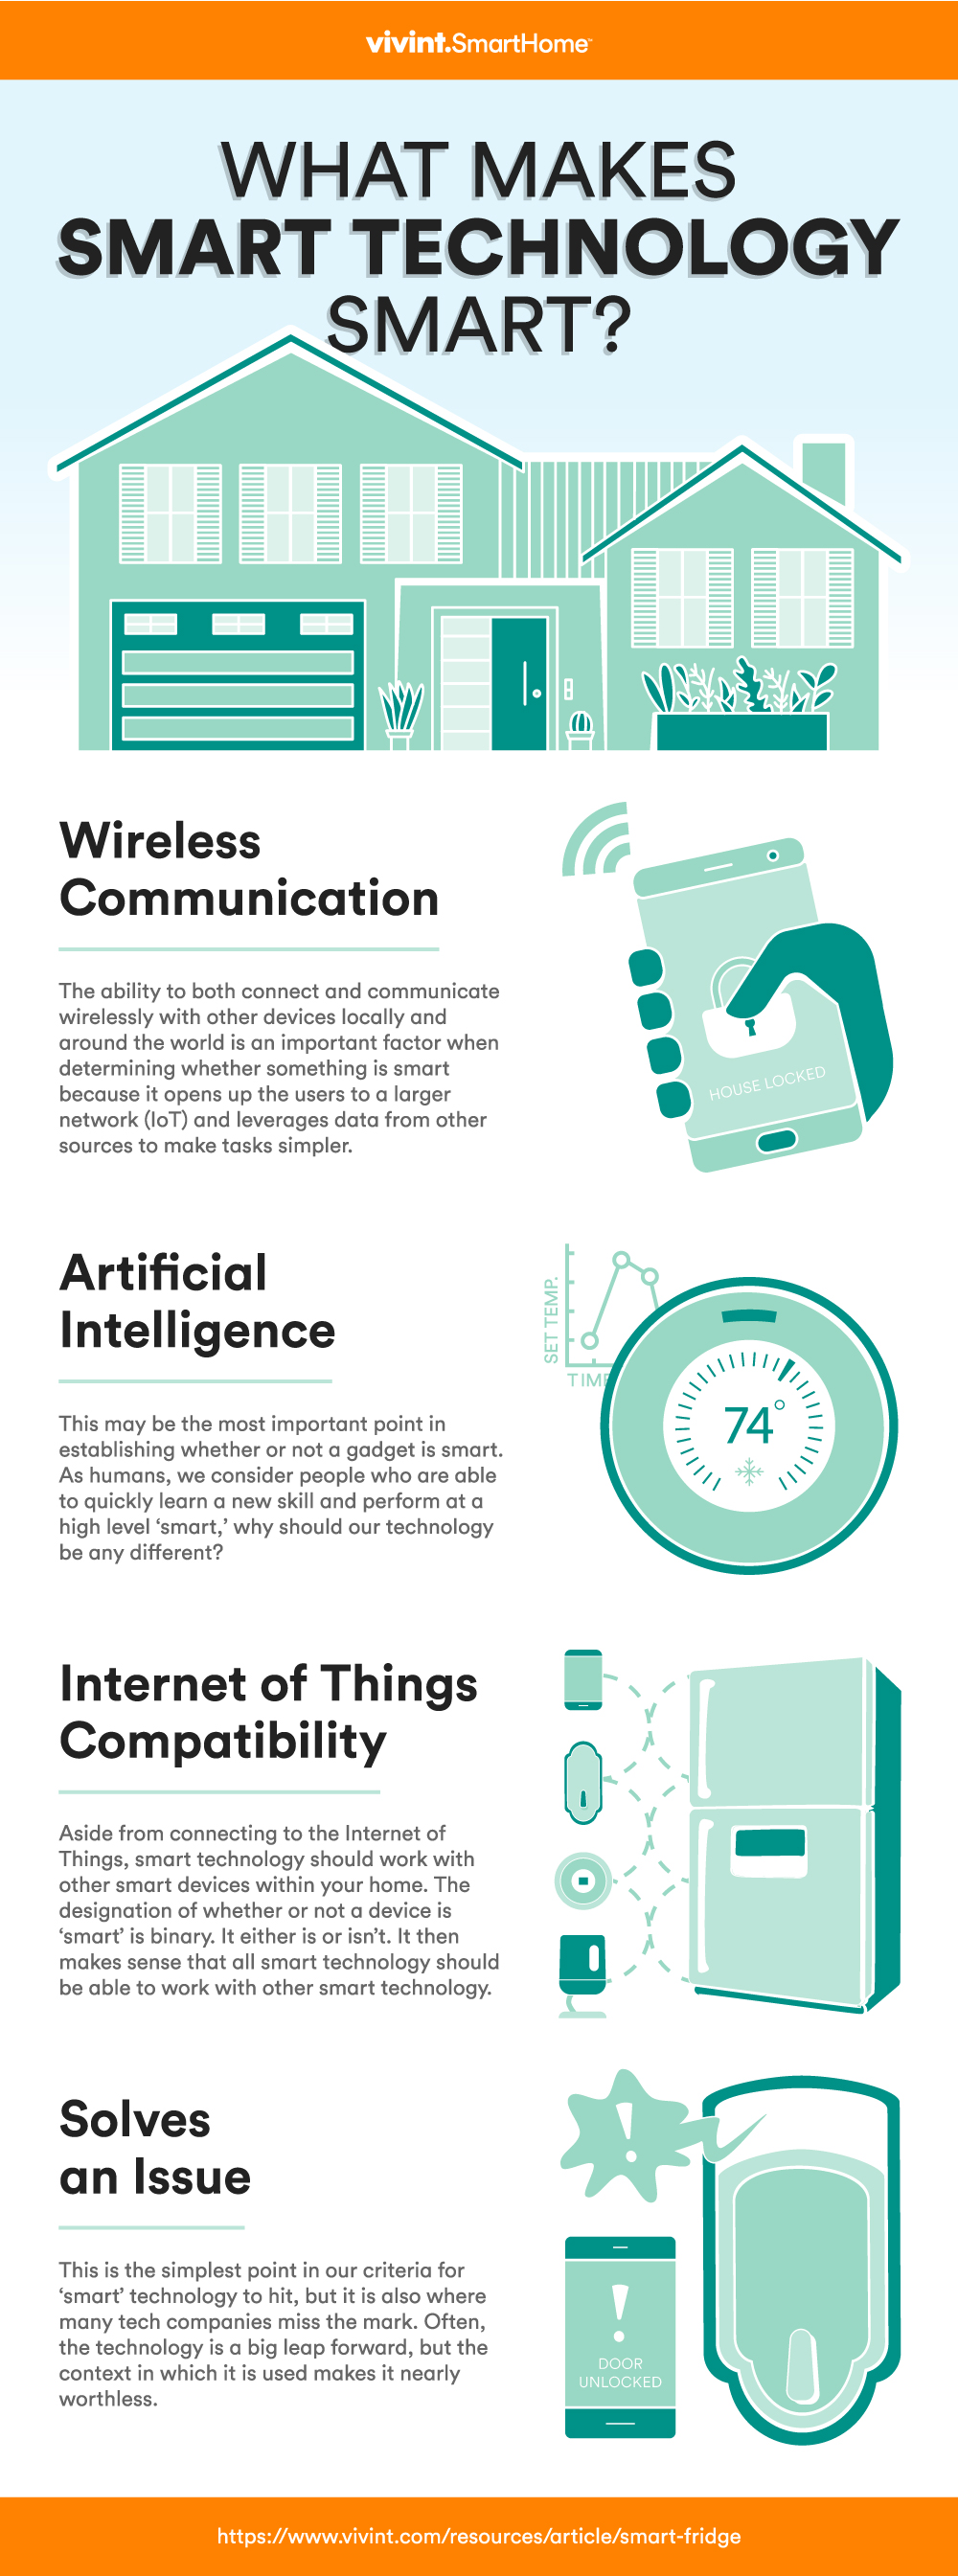 What Makes Smart Technology Smart [infographic]